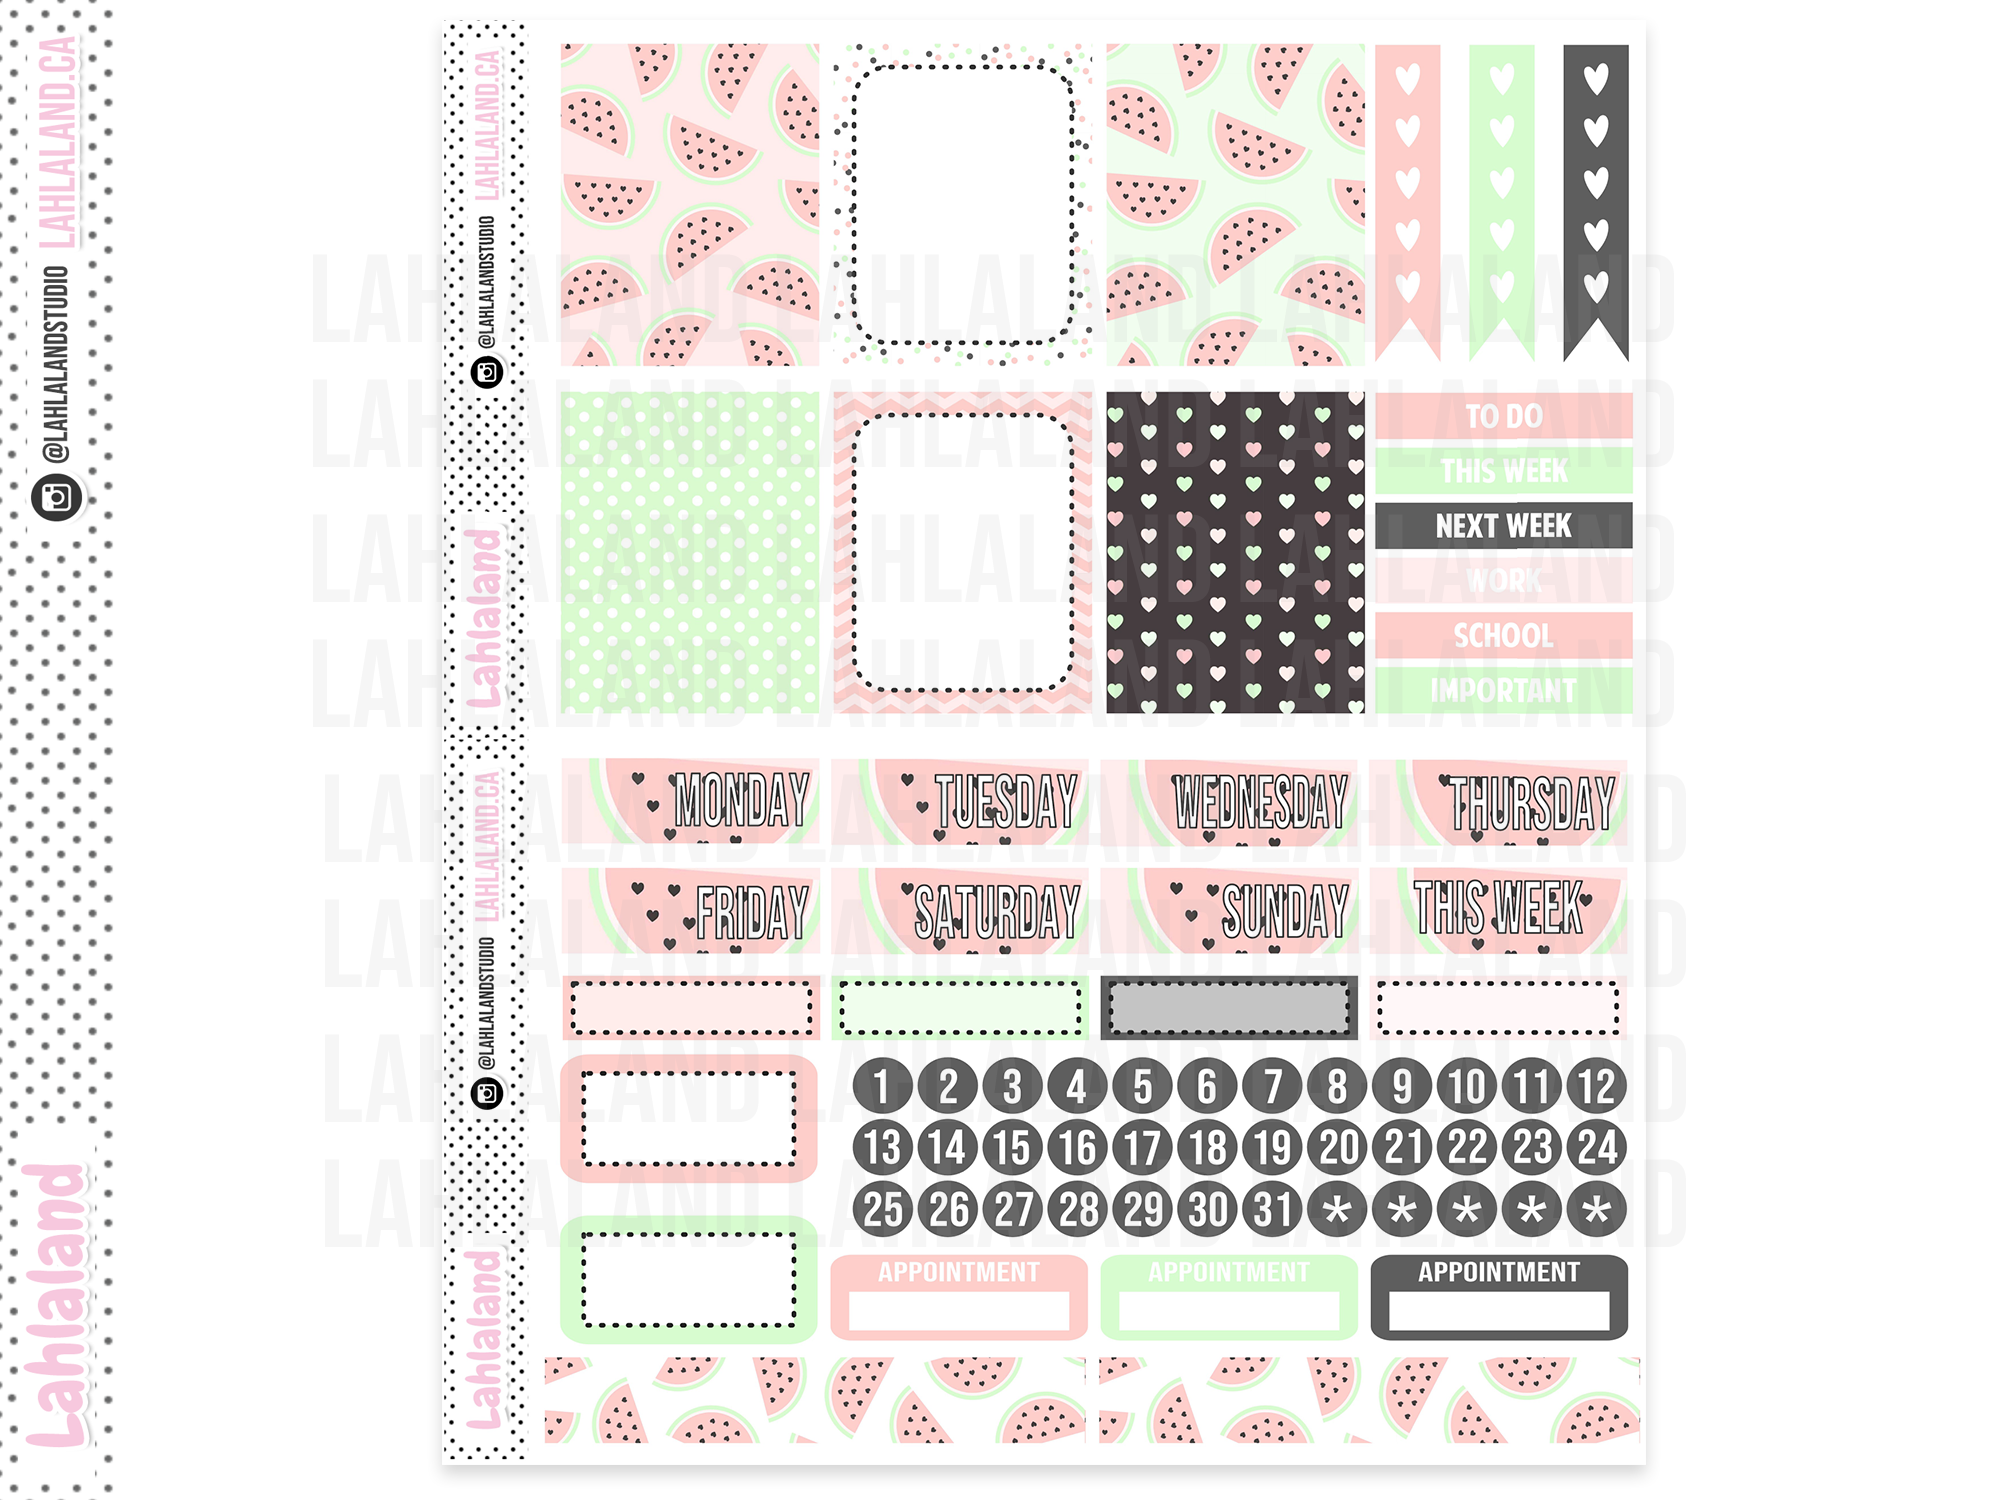 PP Weeks - Watermelon Chic Weekly Kit